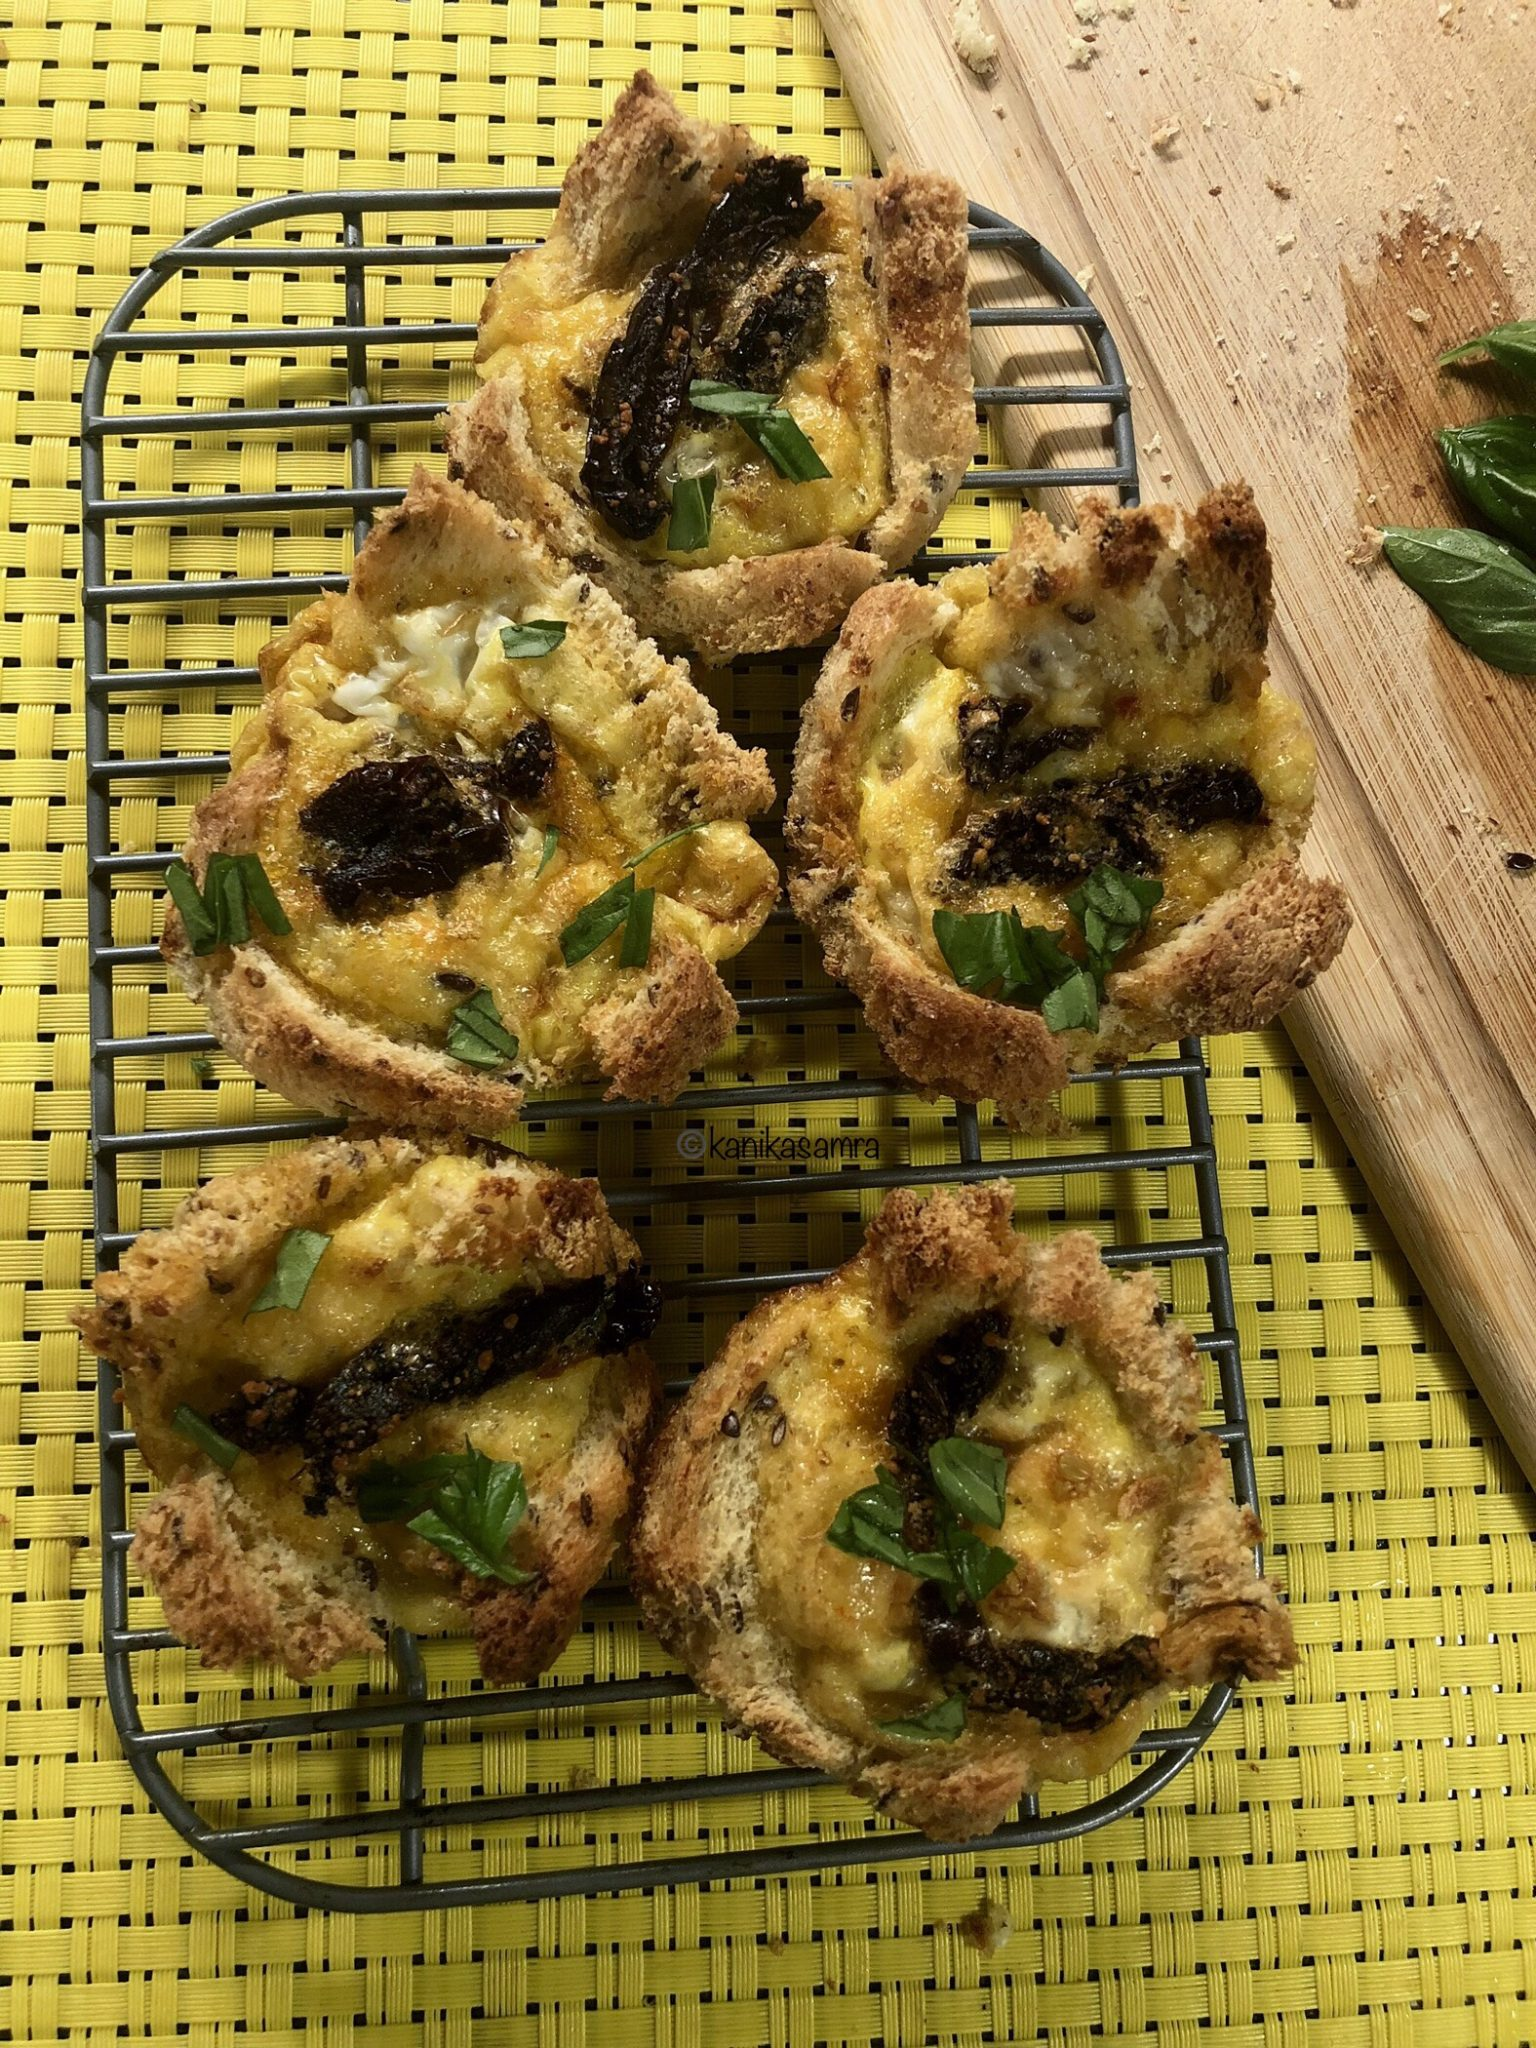 Breakfast Muffins with eggs, sun-dried tomatoes, bread and basil.